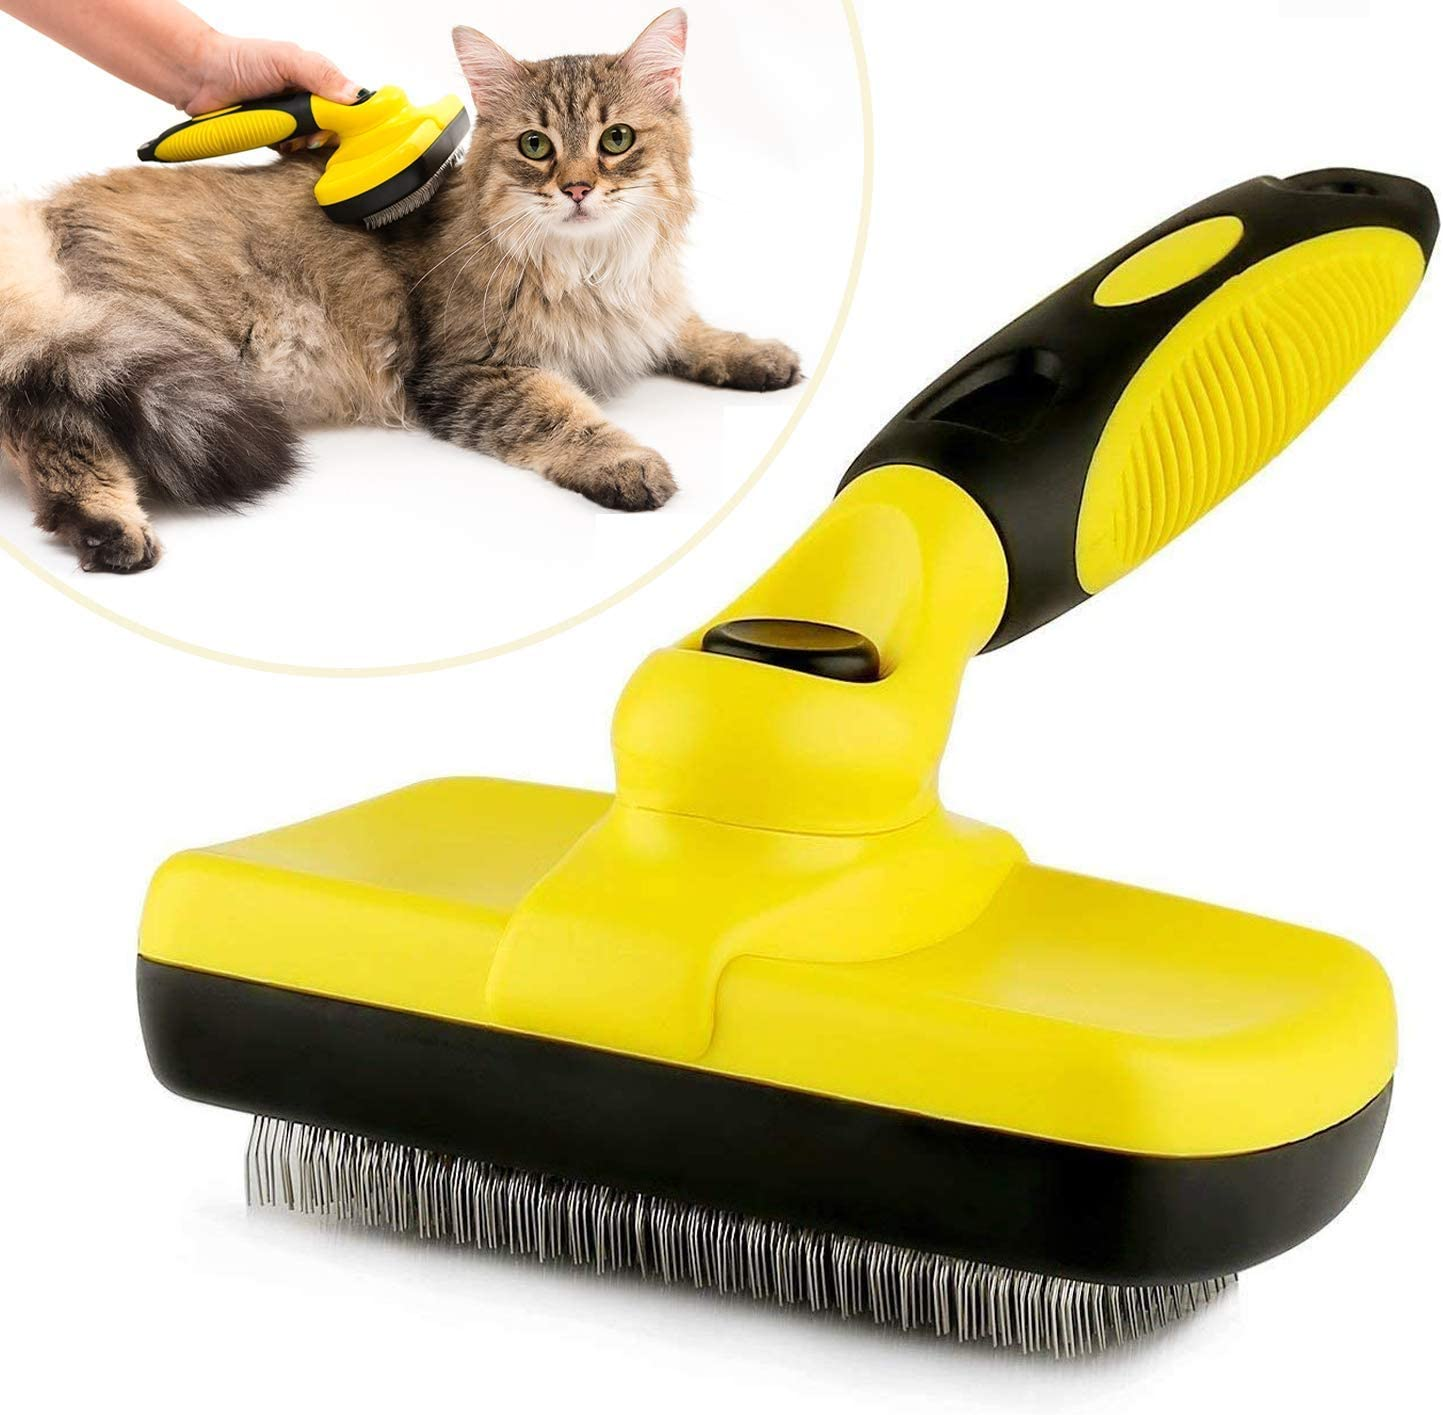 Mats and Tangled Hair for Short and Long Hair Gently Removes Loose Undercoat UPSKY Dog Brush Self Cleaning Dog Slicker Brush Pet Grooming Shedding Tool Brush Cat Brush